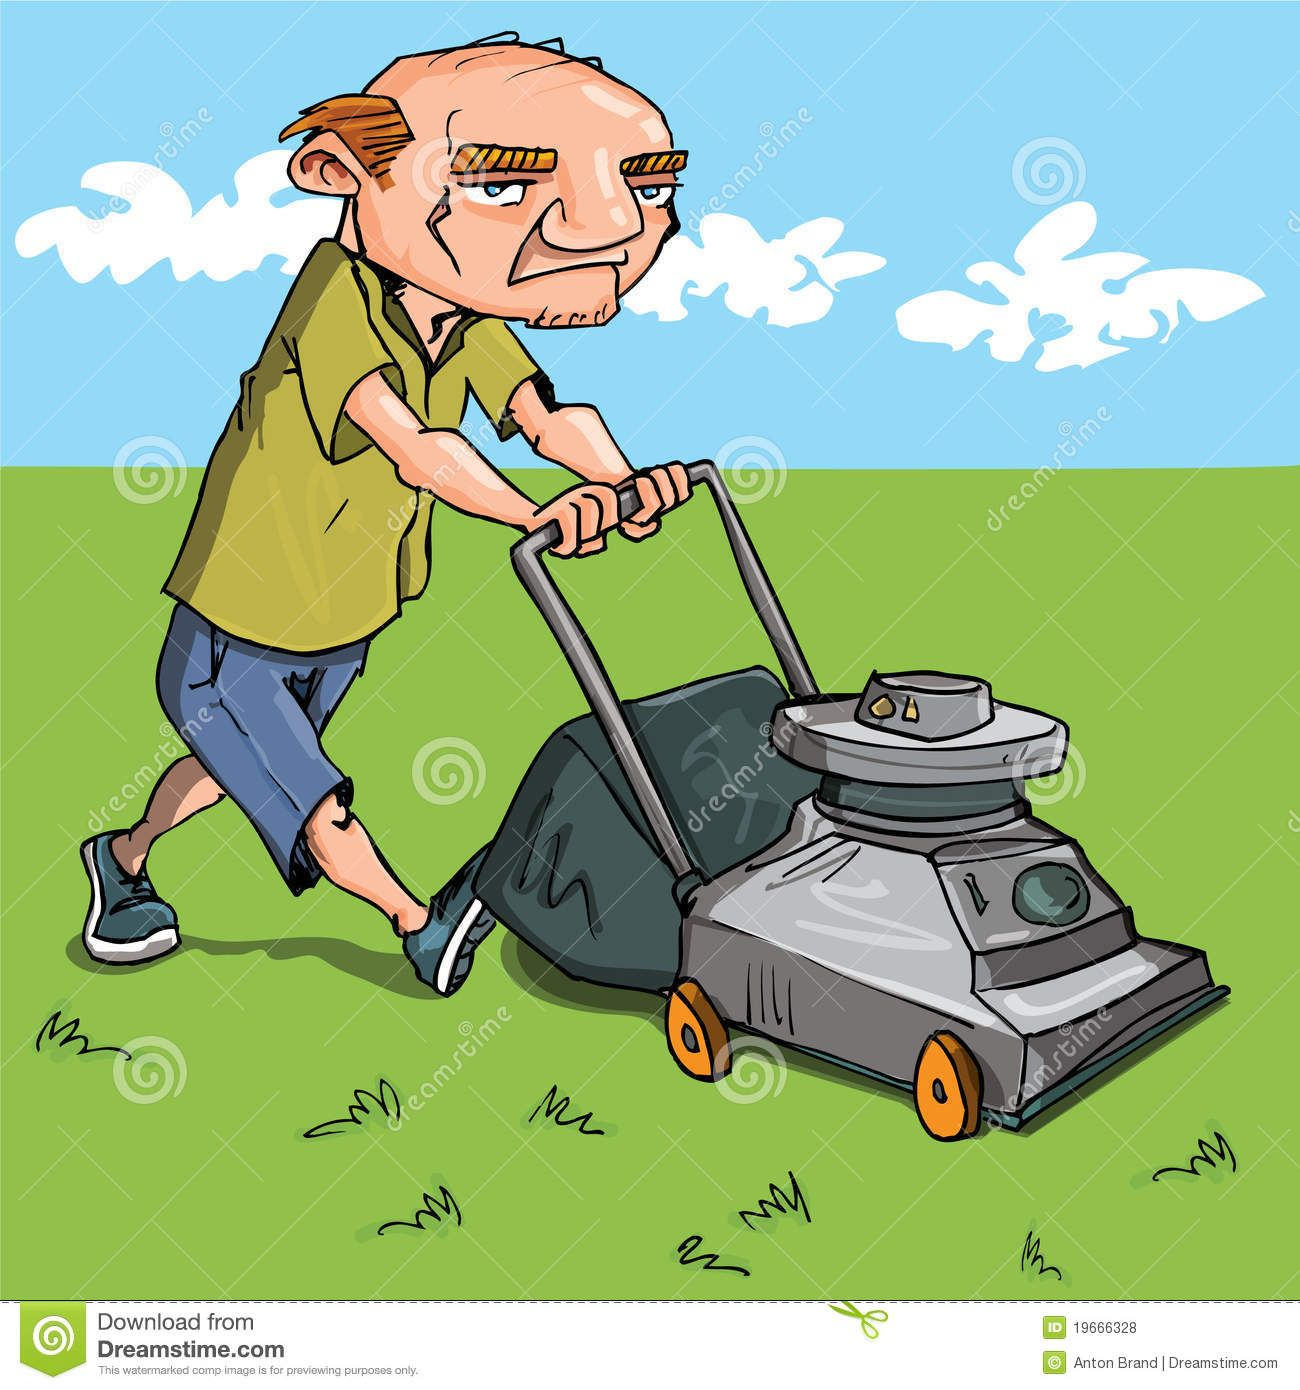 Cartoon Man Mowing His Lawn Grass And Blue Sky Behind Sponsored Advertisement Sponsored Man Blue Sky Mowing Cartoon Man Free Clip Art Cartoon